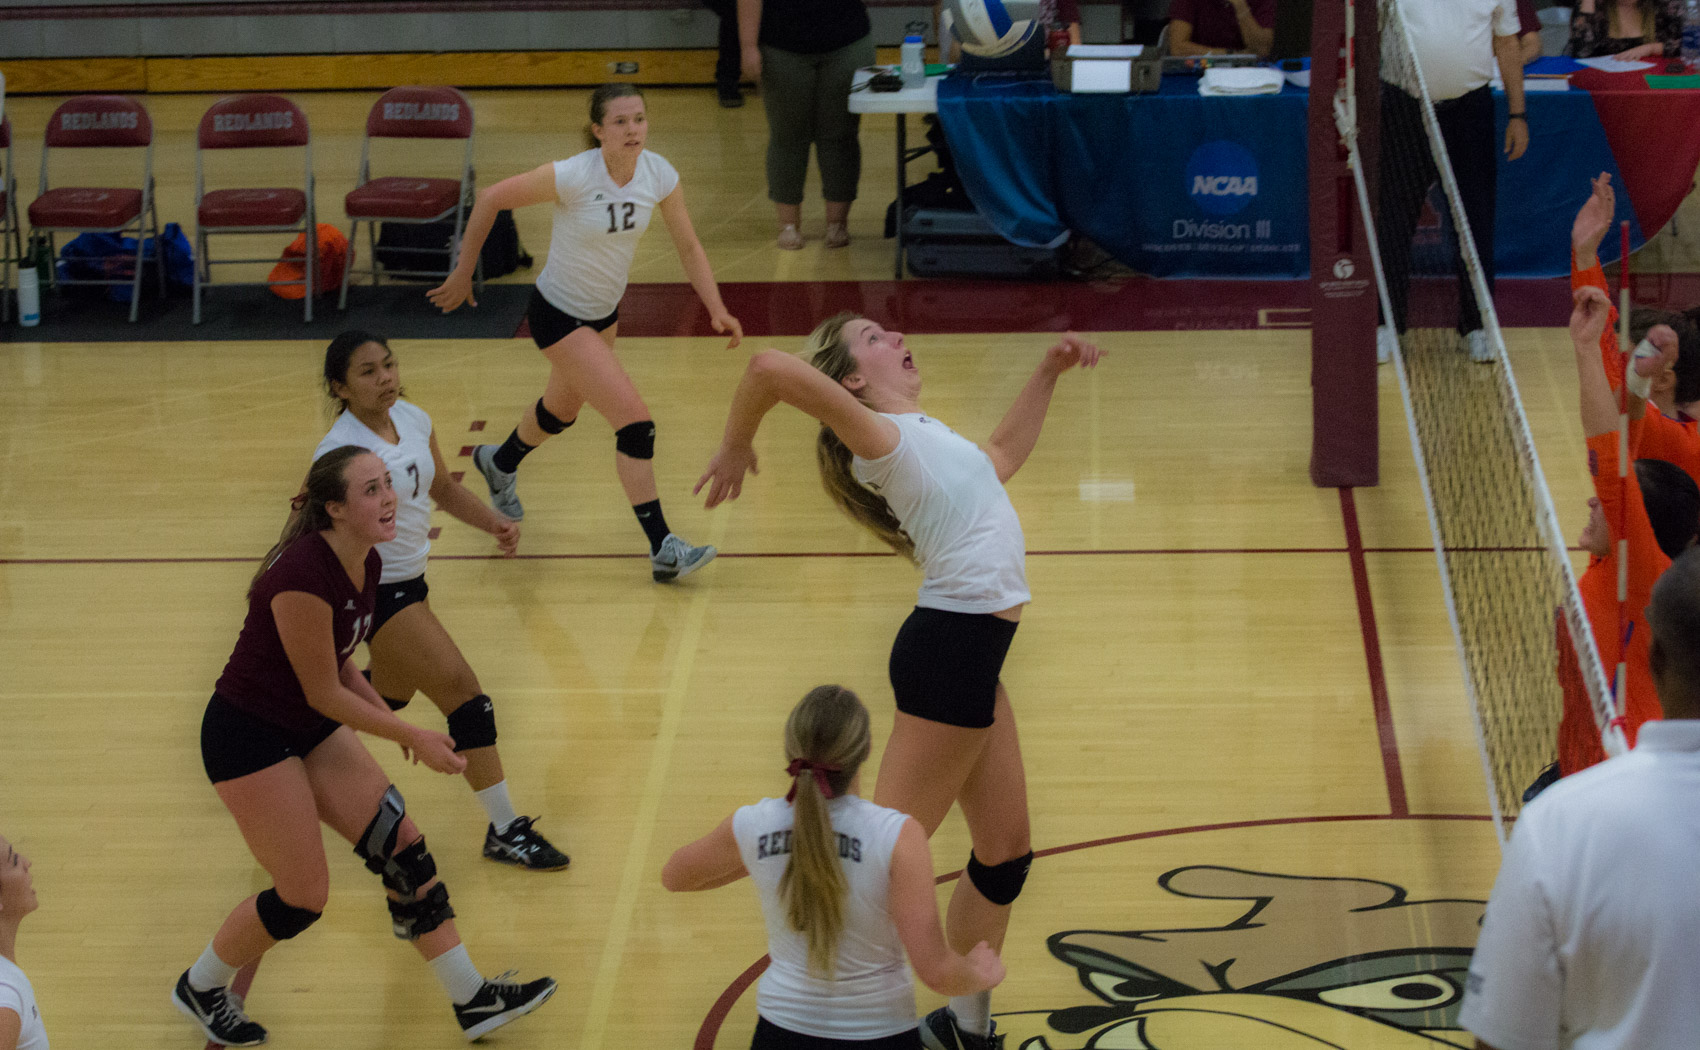 Women's Volleyball Victorious Against University of Antelope Valley